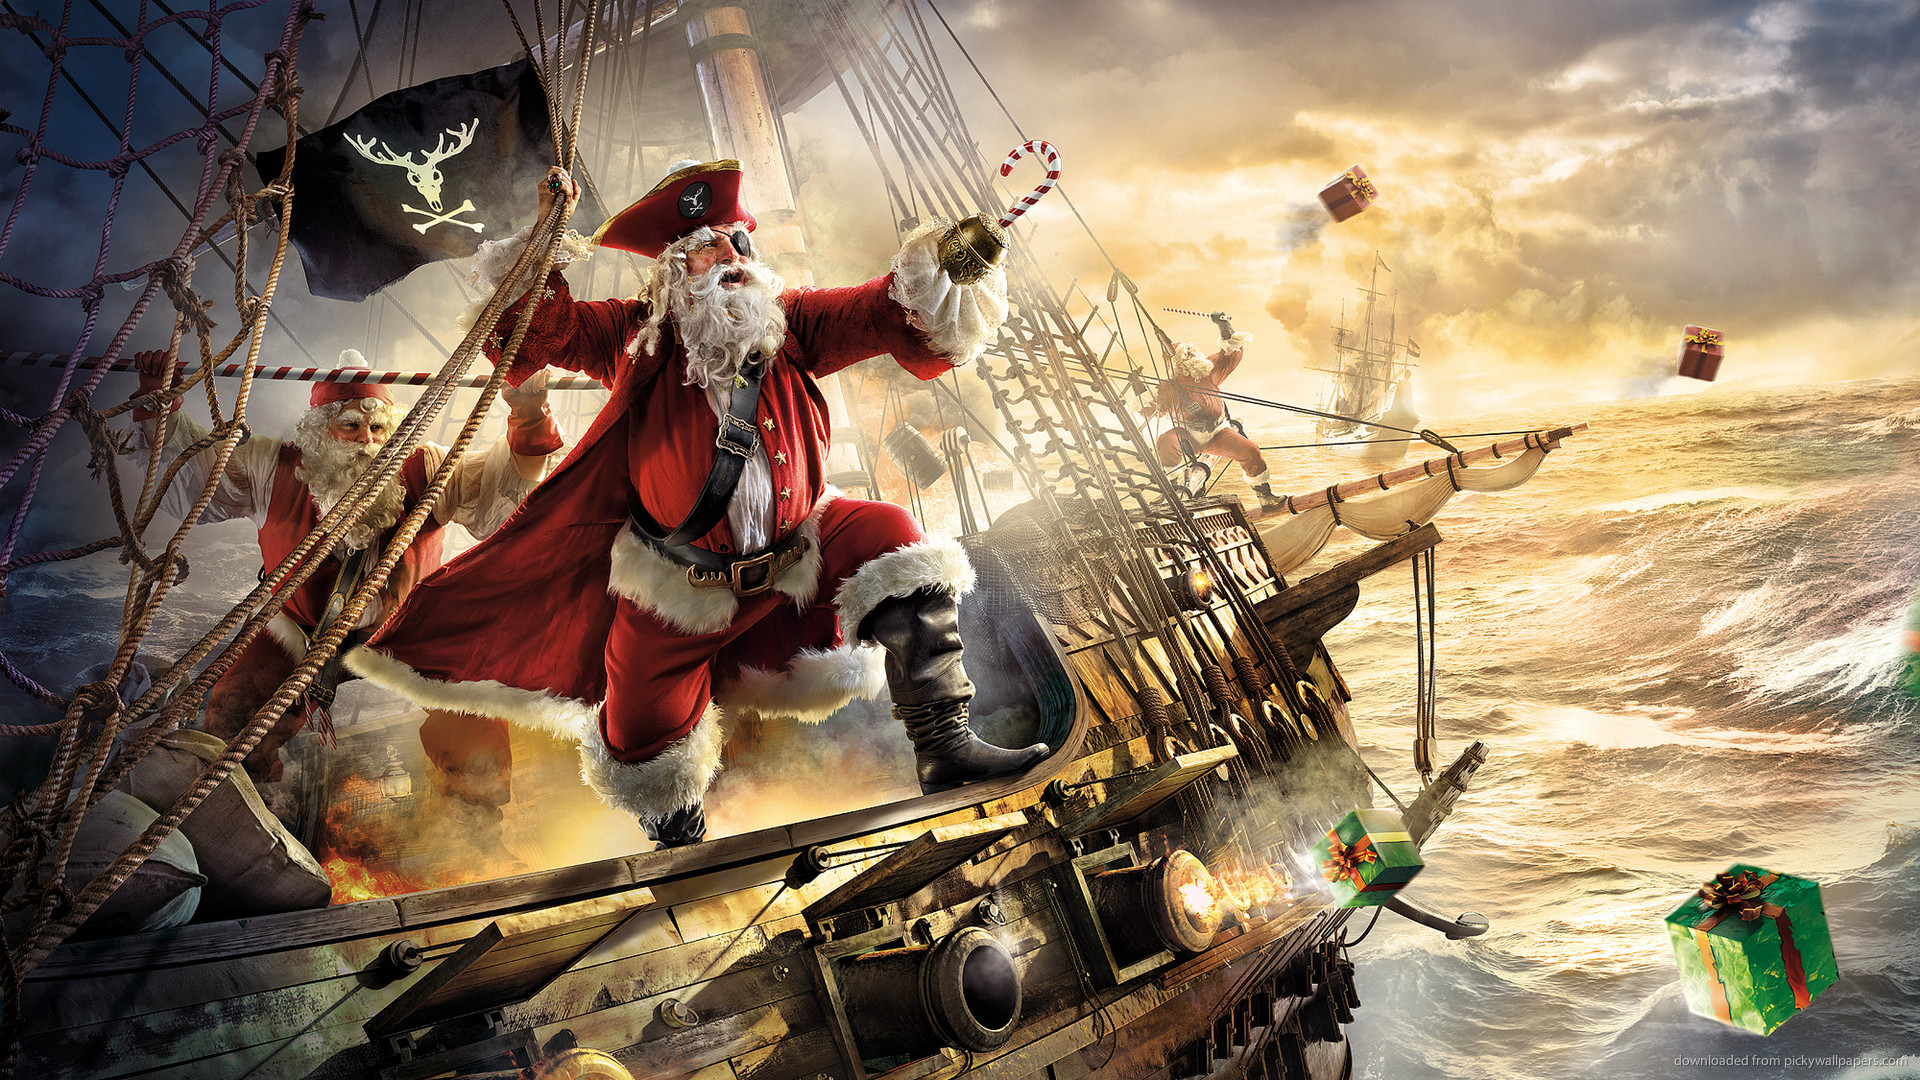 Download Pirates Of The Caribbean Christmas Wallpaper